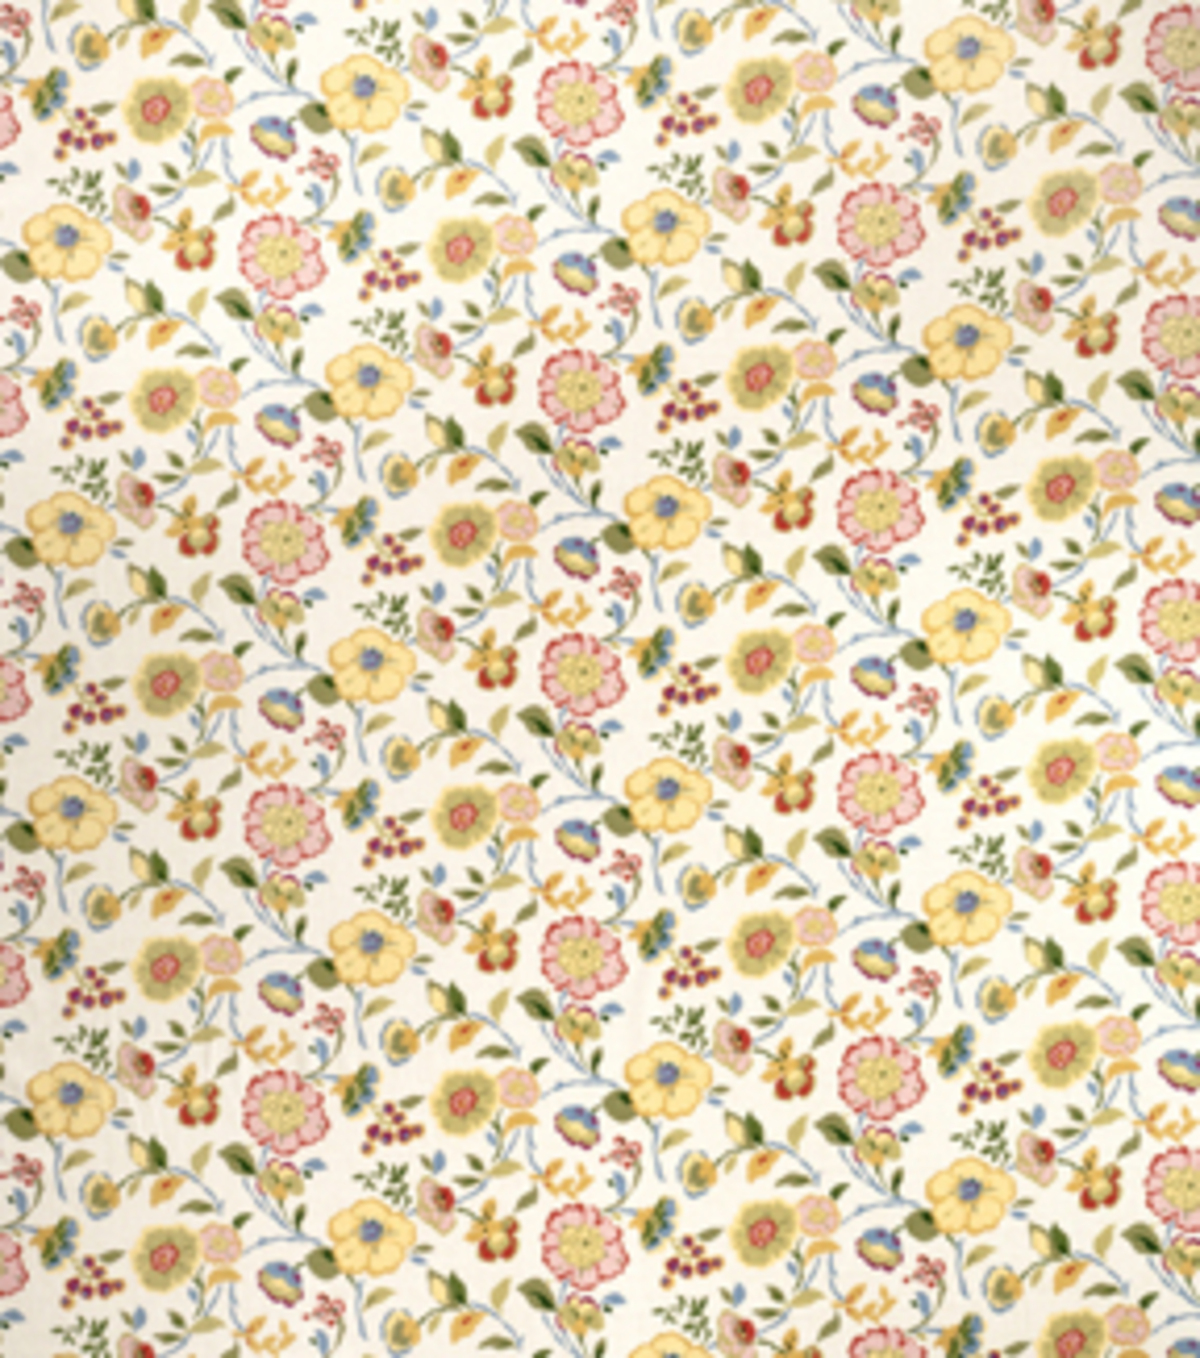 Home Decor 8\u0022x8\u0022 Fabric Swatch-Upholstery Fabric SMC Designs Fairlawn Candy